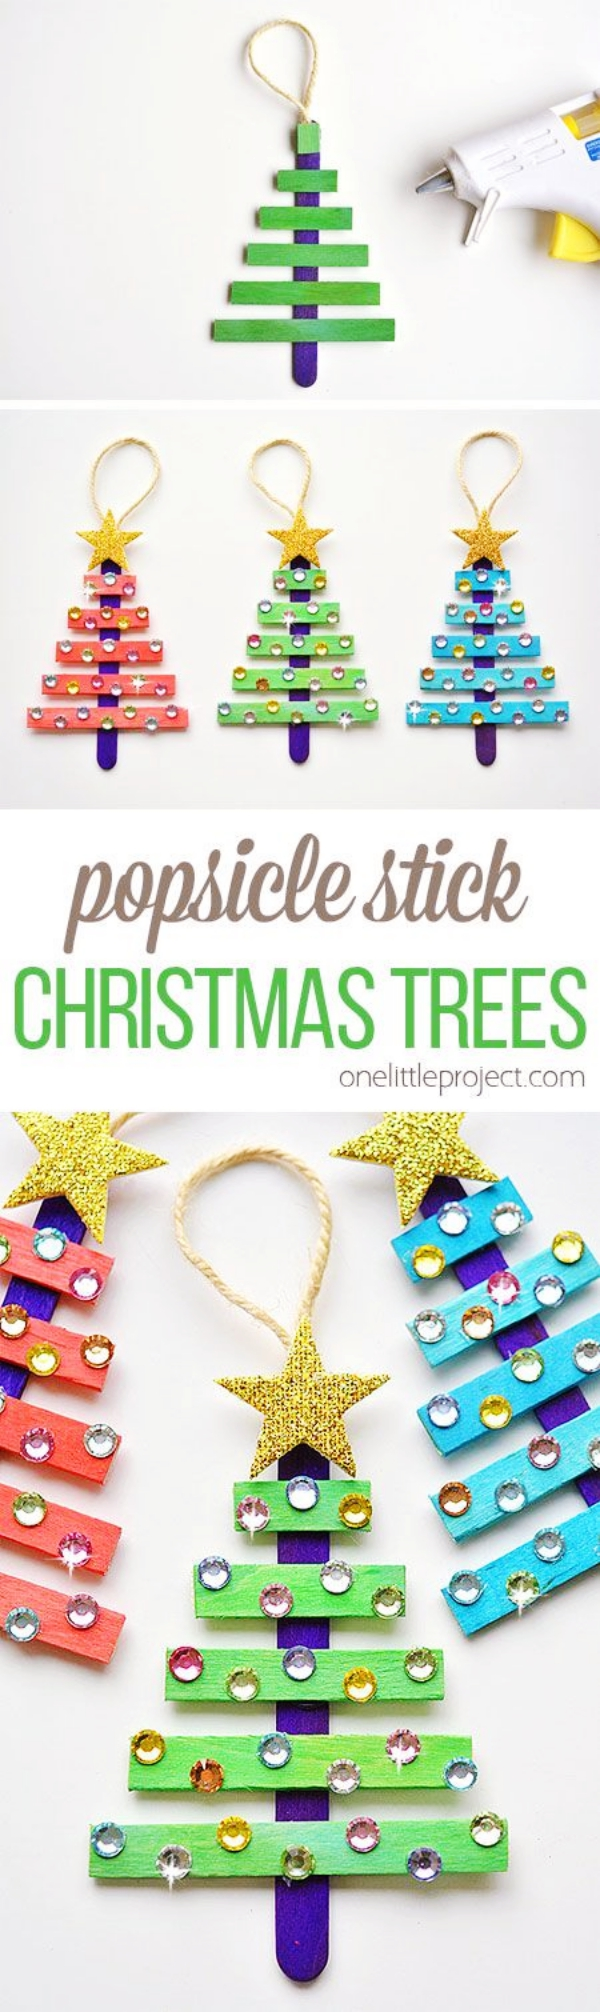 20 Amazing Christmas Craft Ideas For Kids - Bored Art